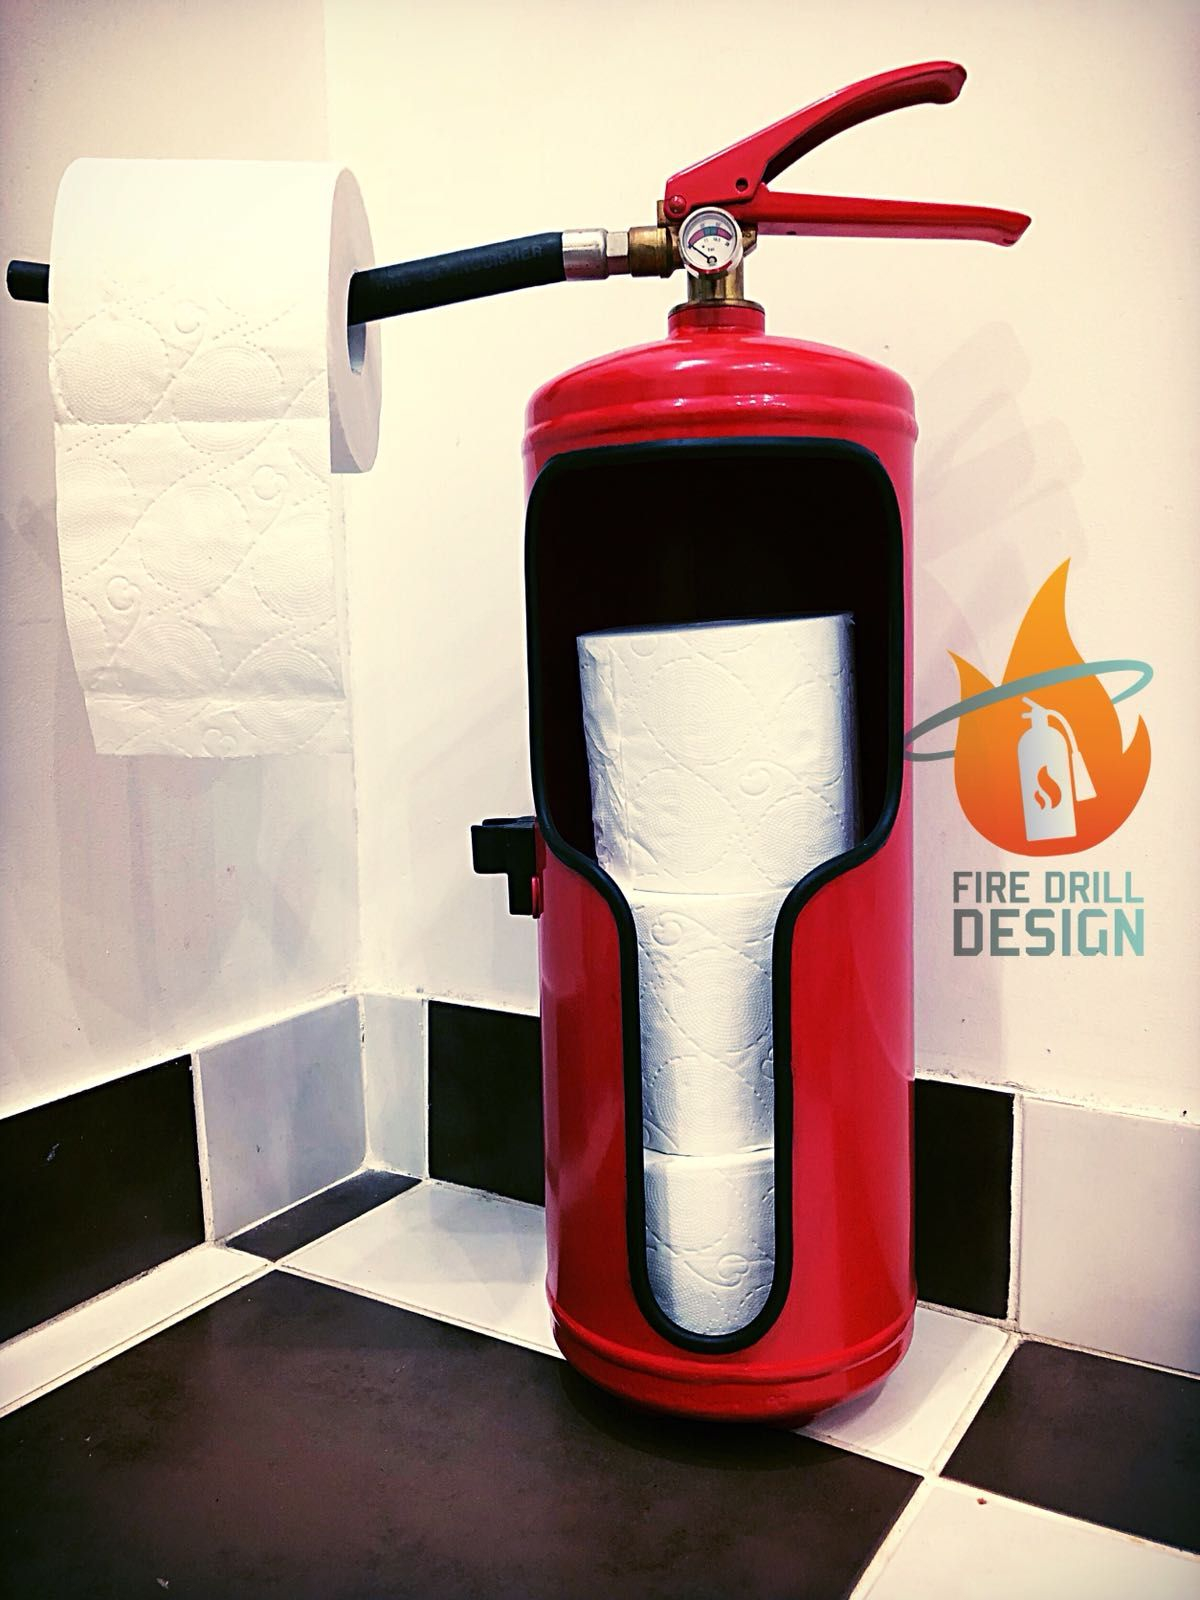 Boite A Clefs originale Stupéfiant Upcycled Fire Extinguisher toilet Paper Roll Holder